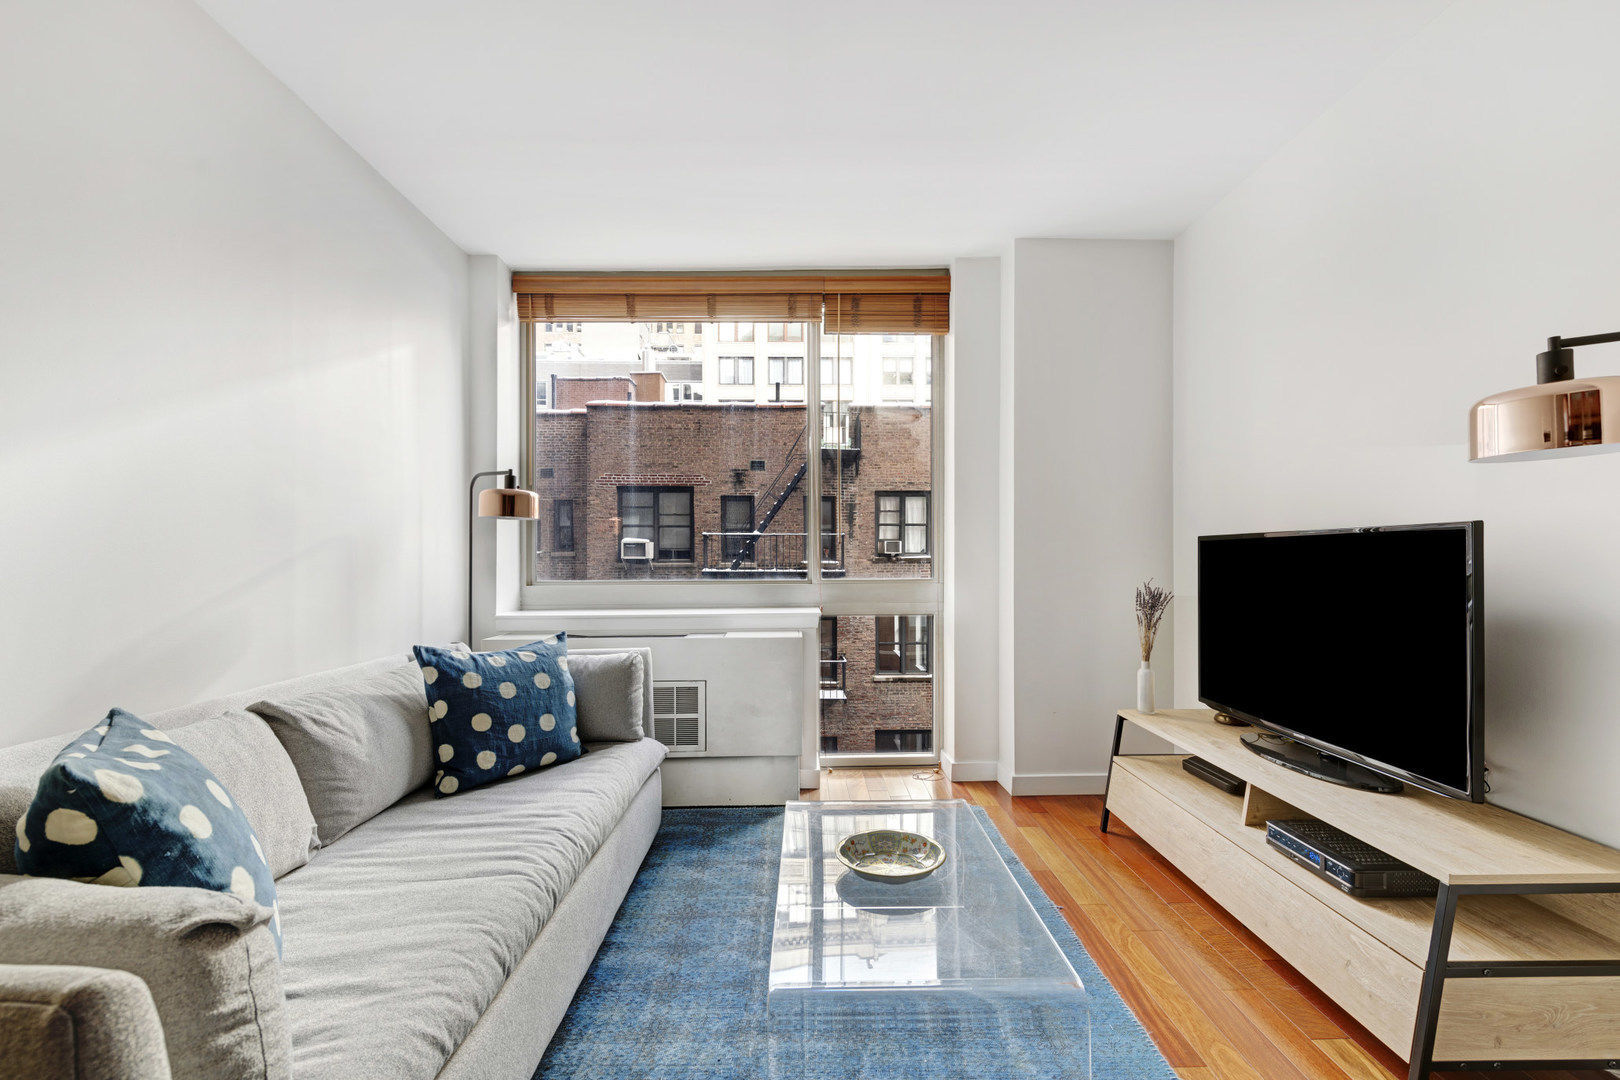 Apartment for sale at 121 East 23rd Street, Apt 6-H